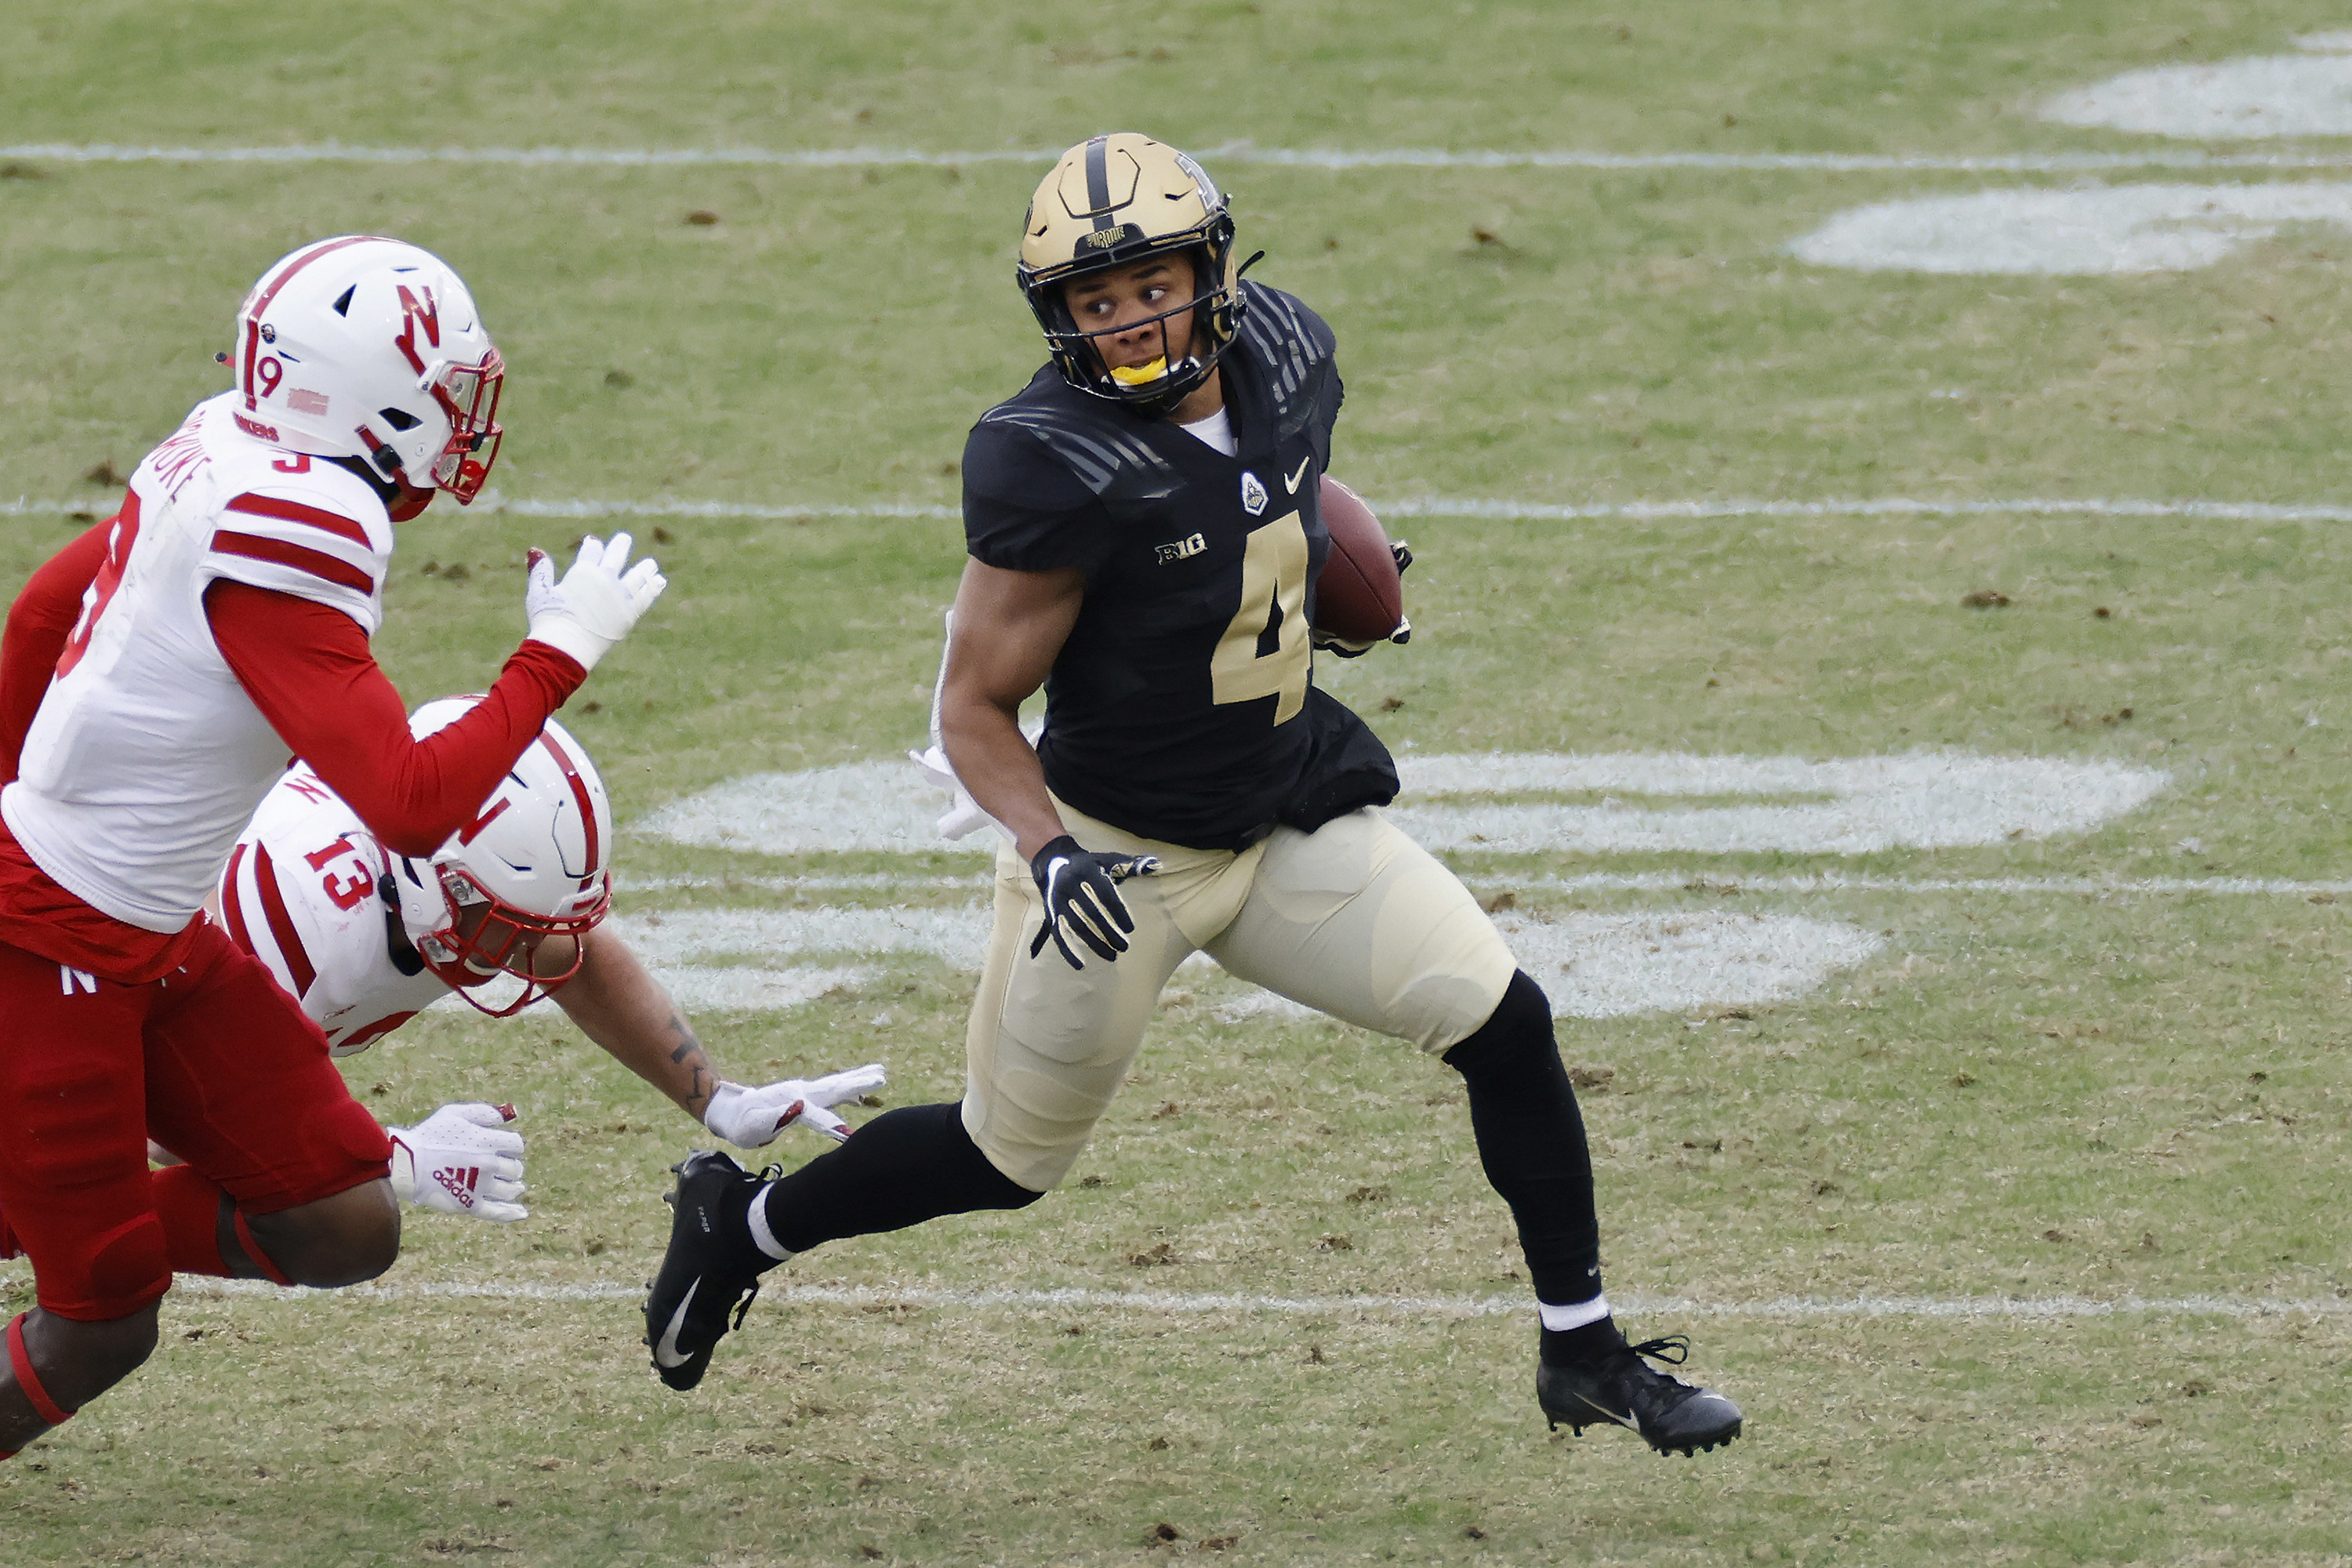 Rondale Moore running away from tacklers